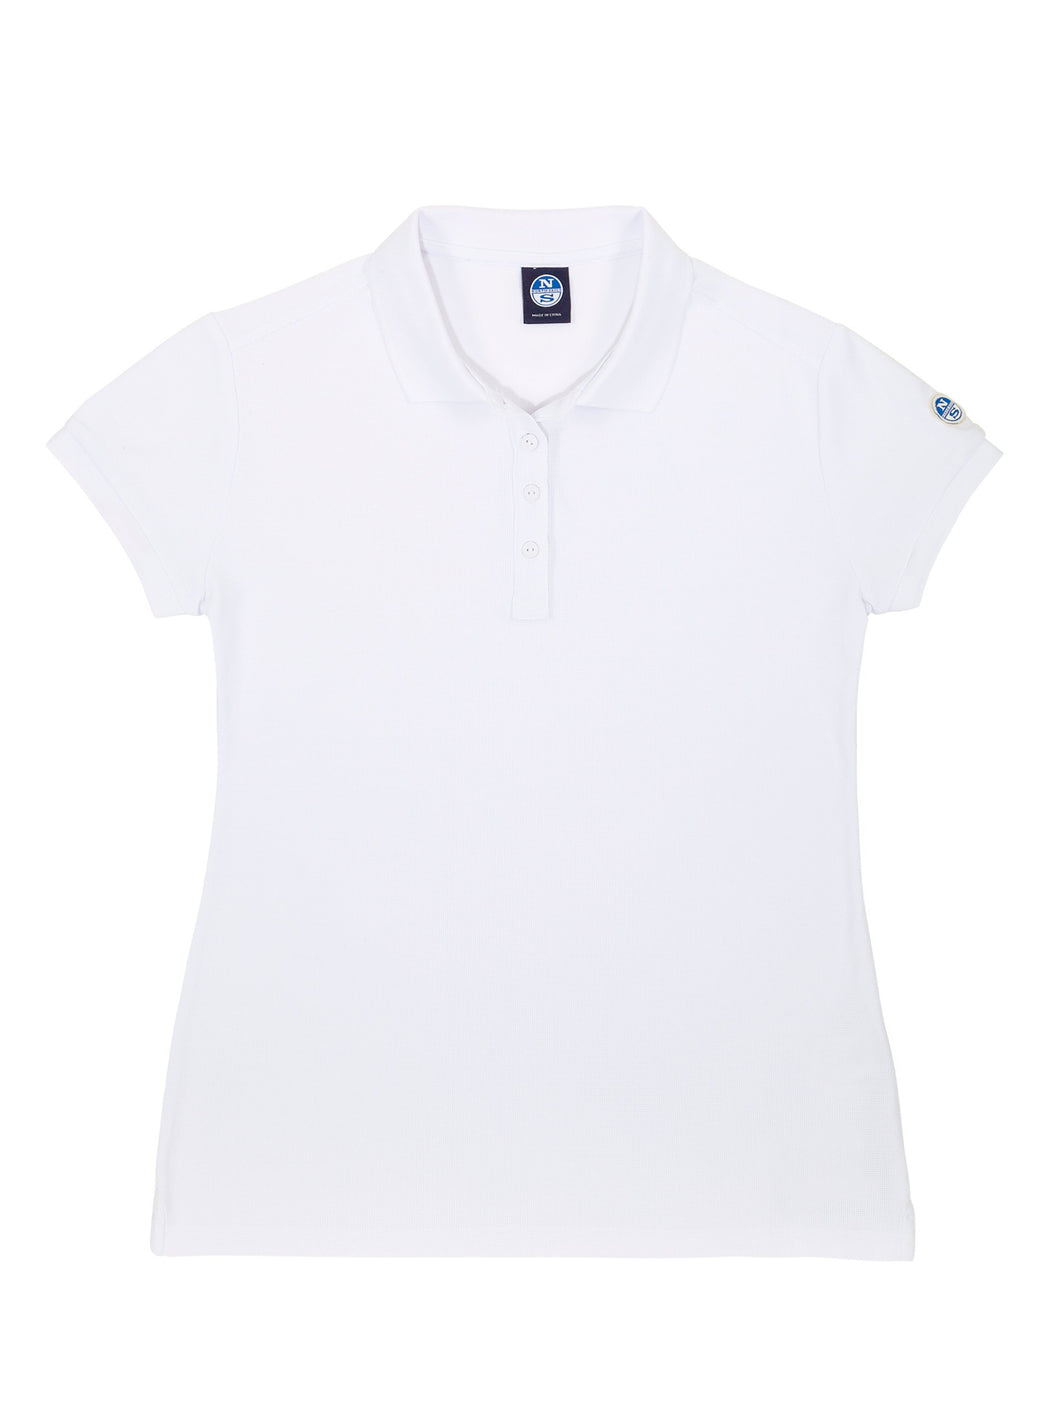 North Sails Women's Tactel Polo